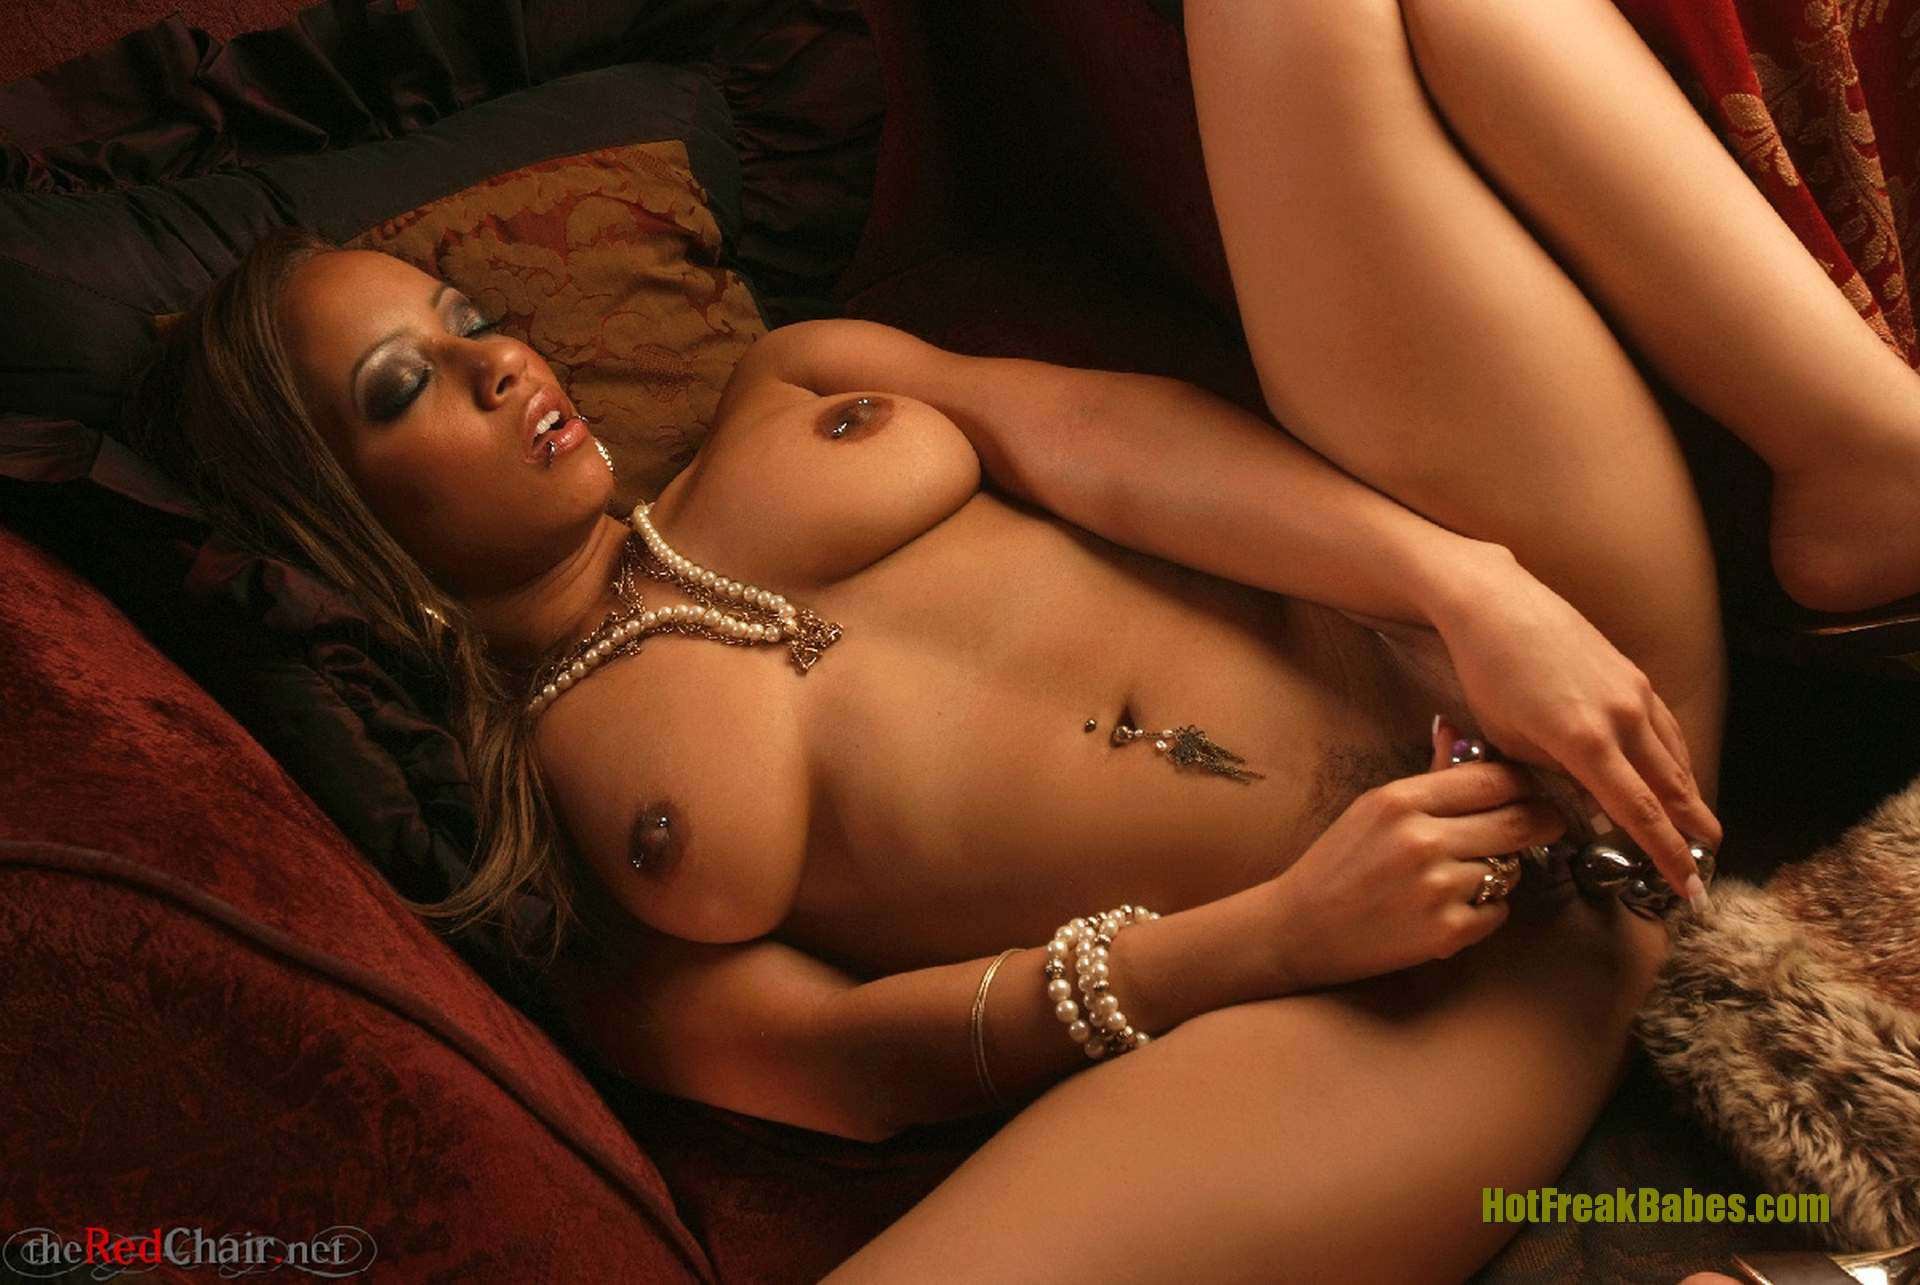 Victoria Taylor, Vickie6, African American, glam model, ebony, ebony model, solo, butt, heels, Red Chair, theredchair, glam, dark erotica, fetish, toys, female masturbation